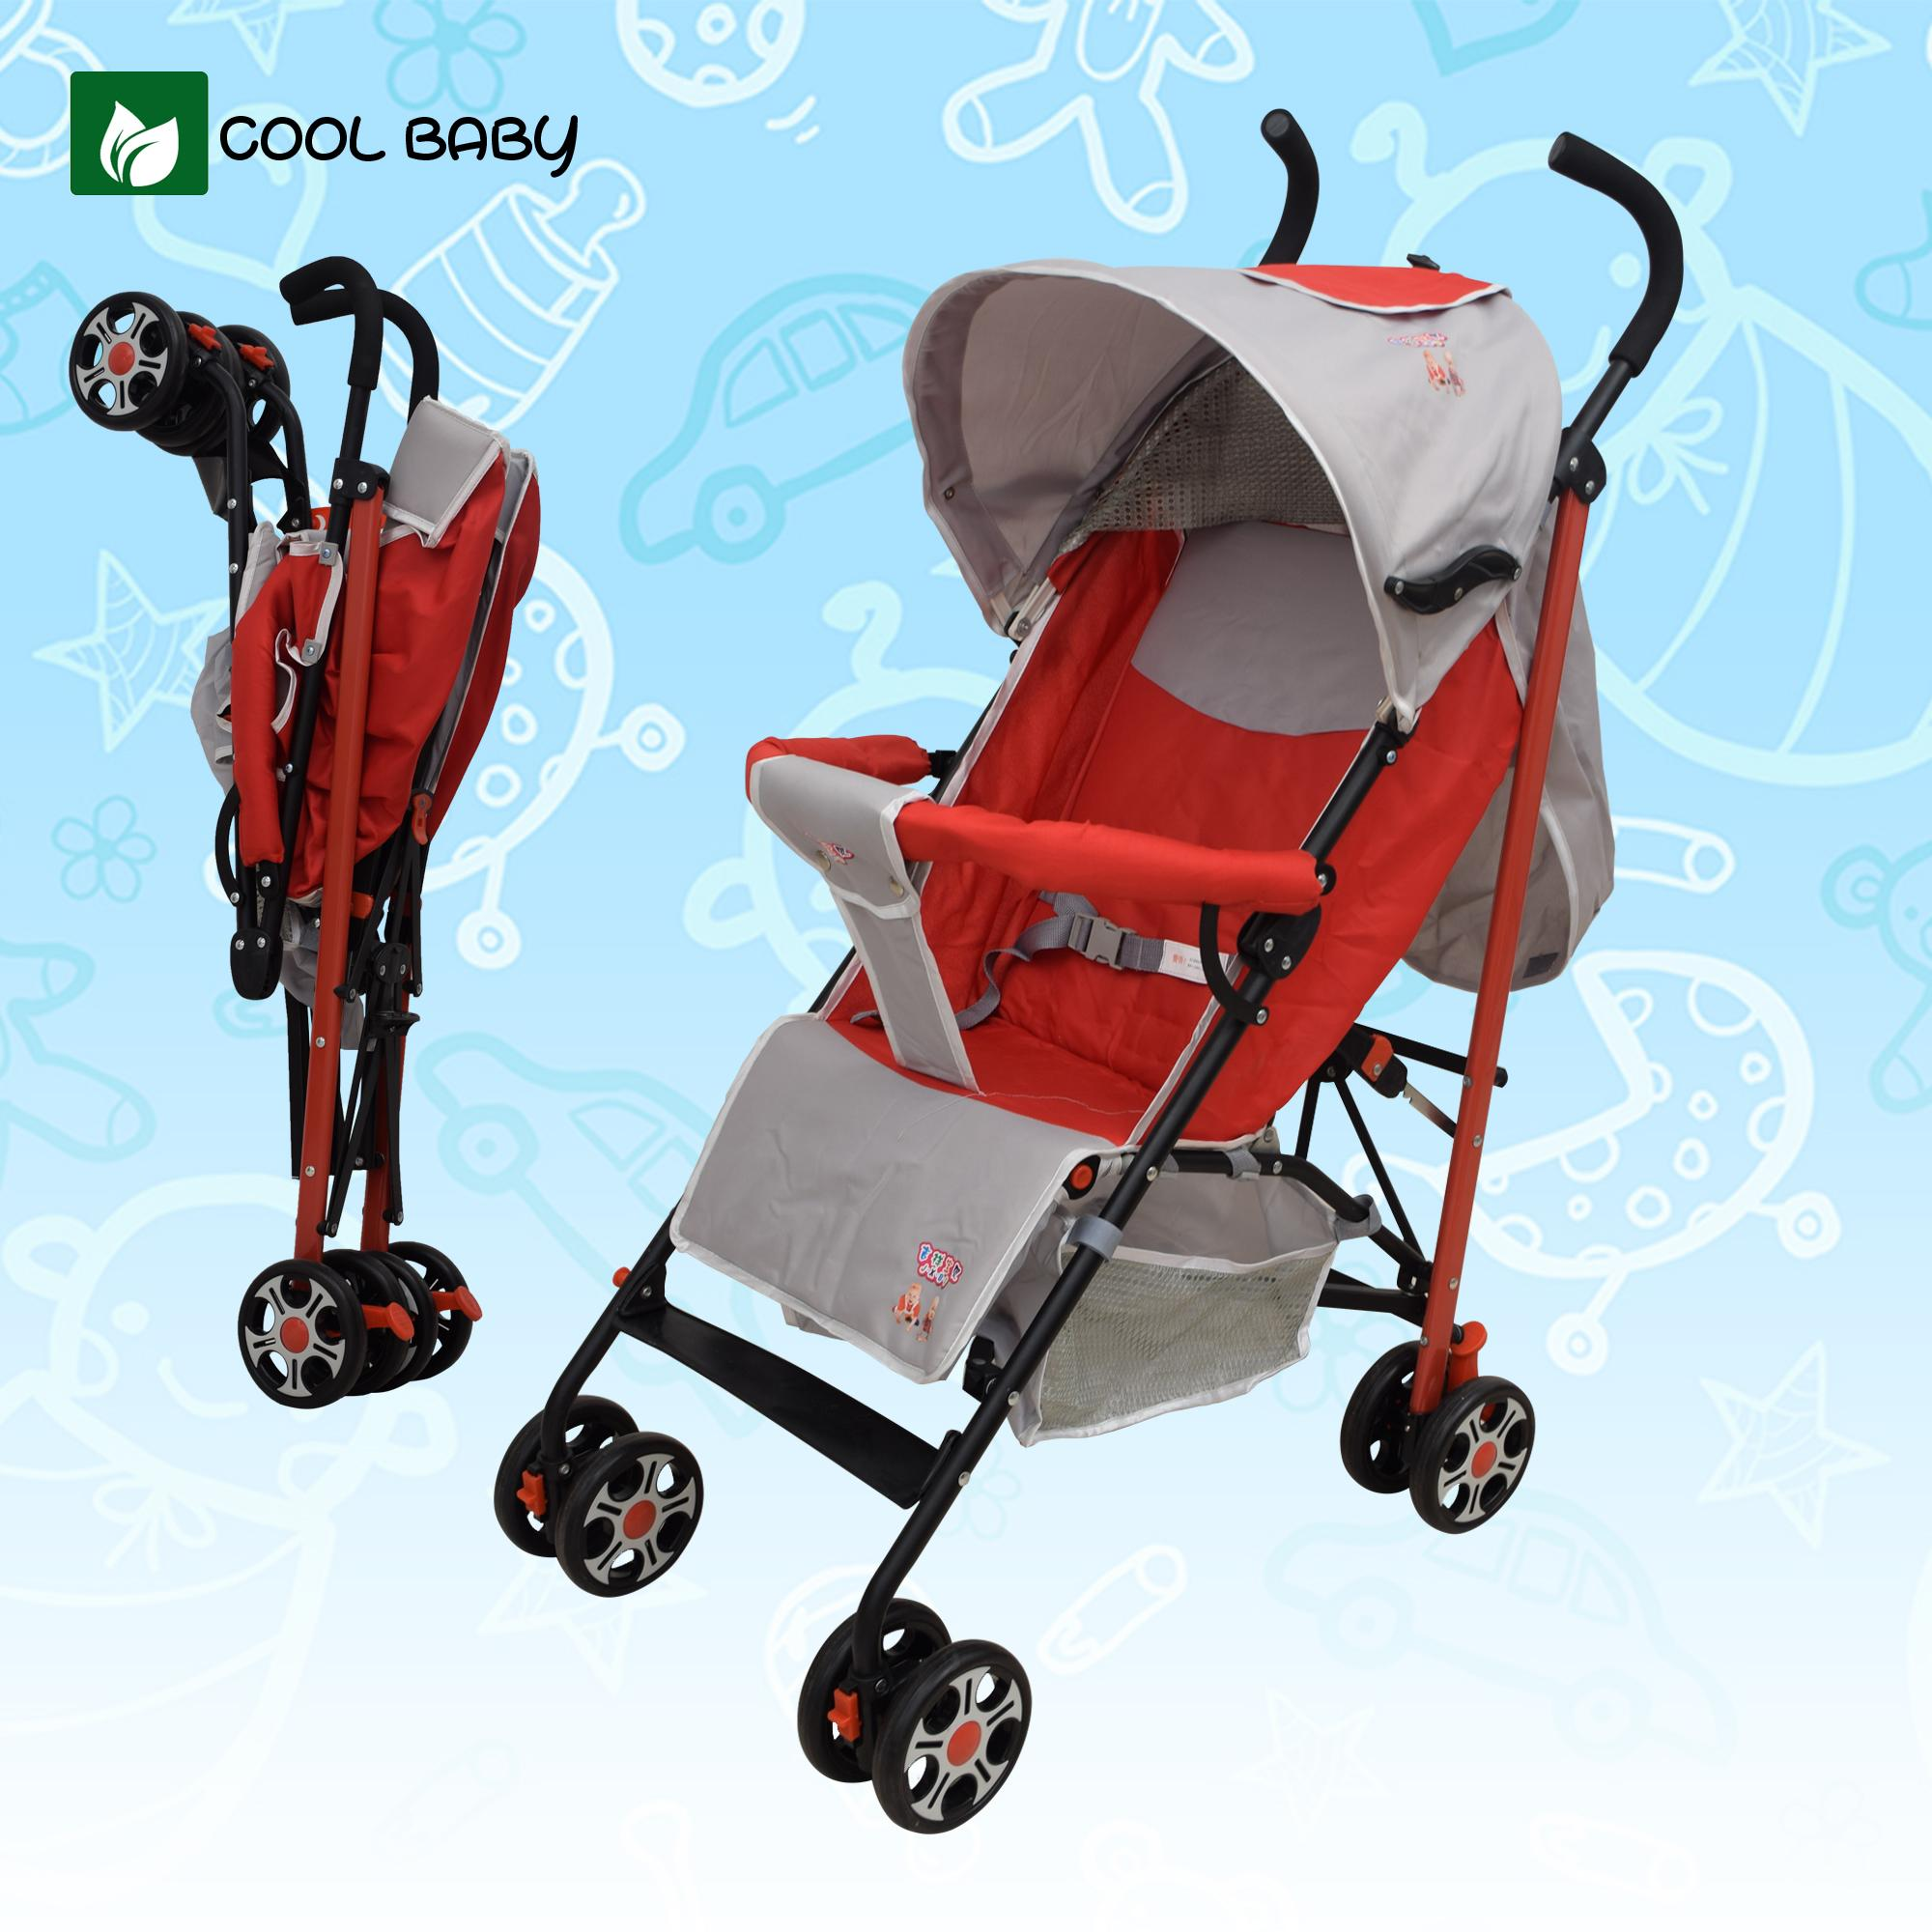 d936473a5 Baby Strollers for sale - Strollers for Babies Online Deals   Prices ...